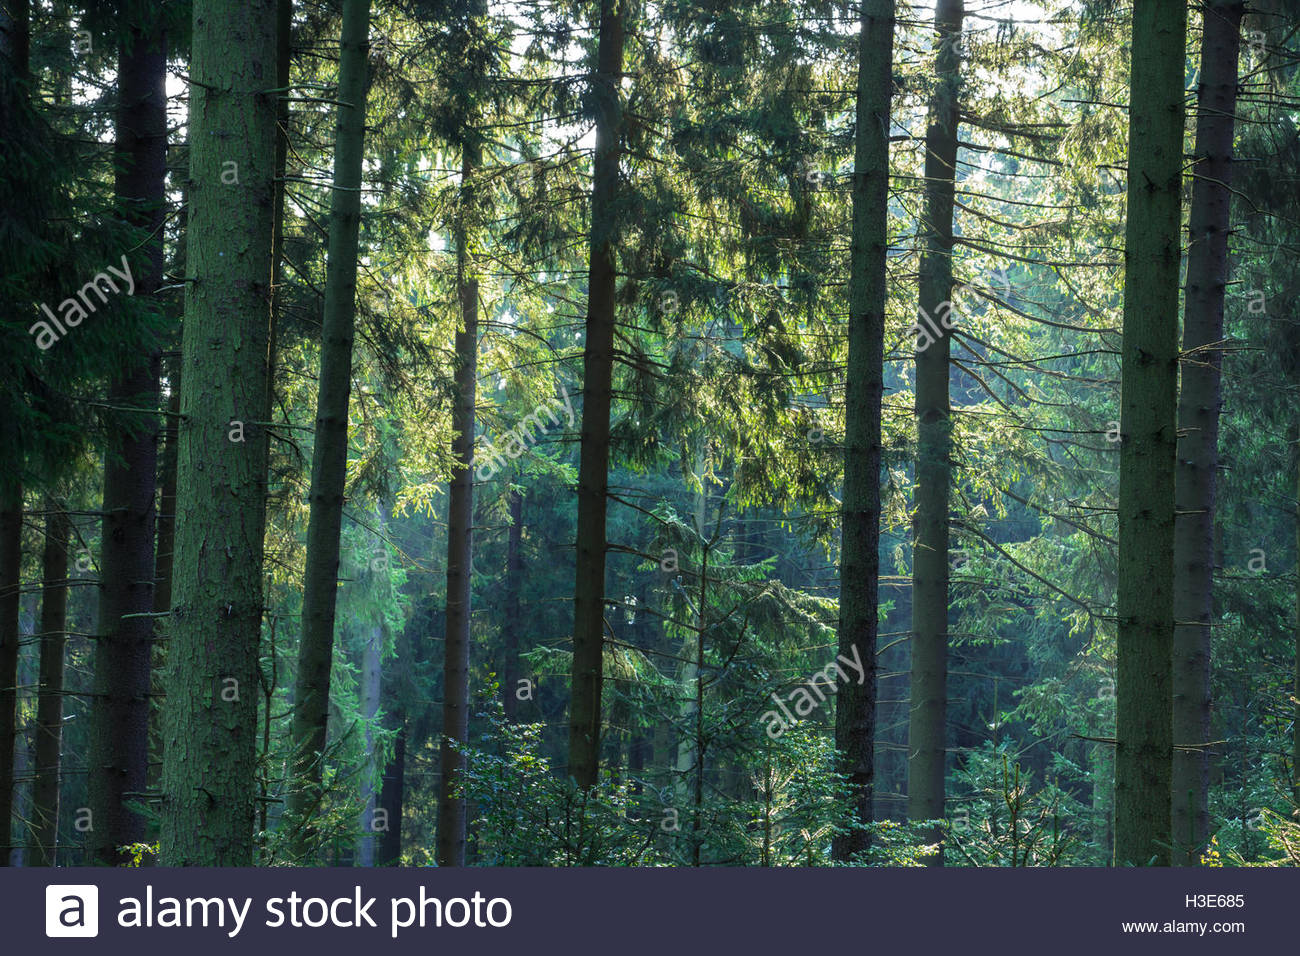 German nature landscape European peaceful forest abstract nature green forest sunlight conifer forest woodland scenery - Stock Image